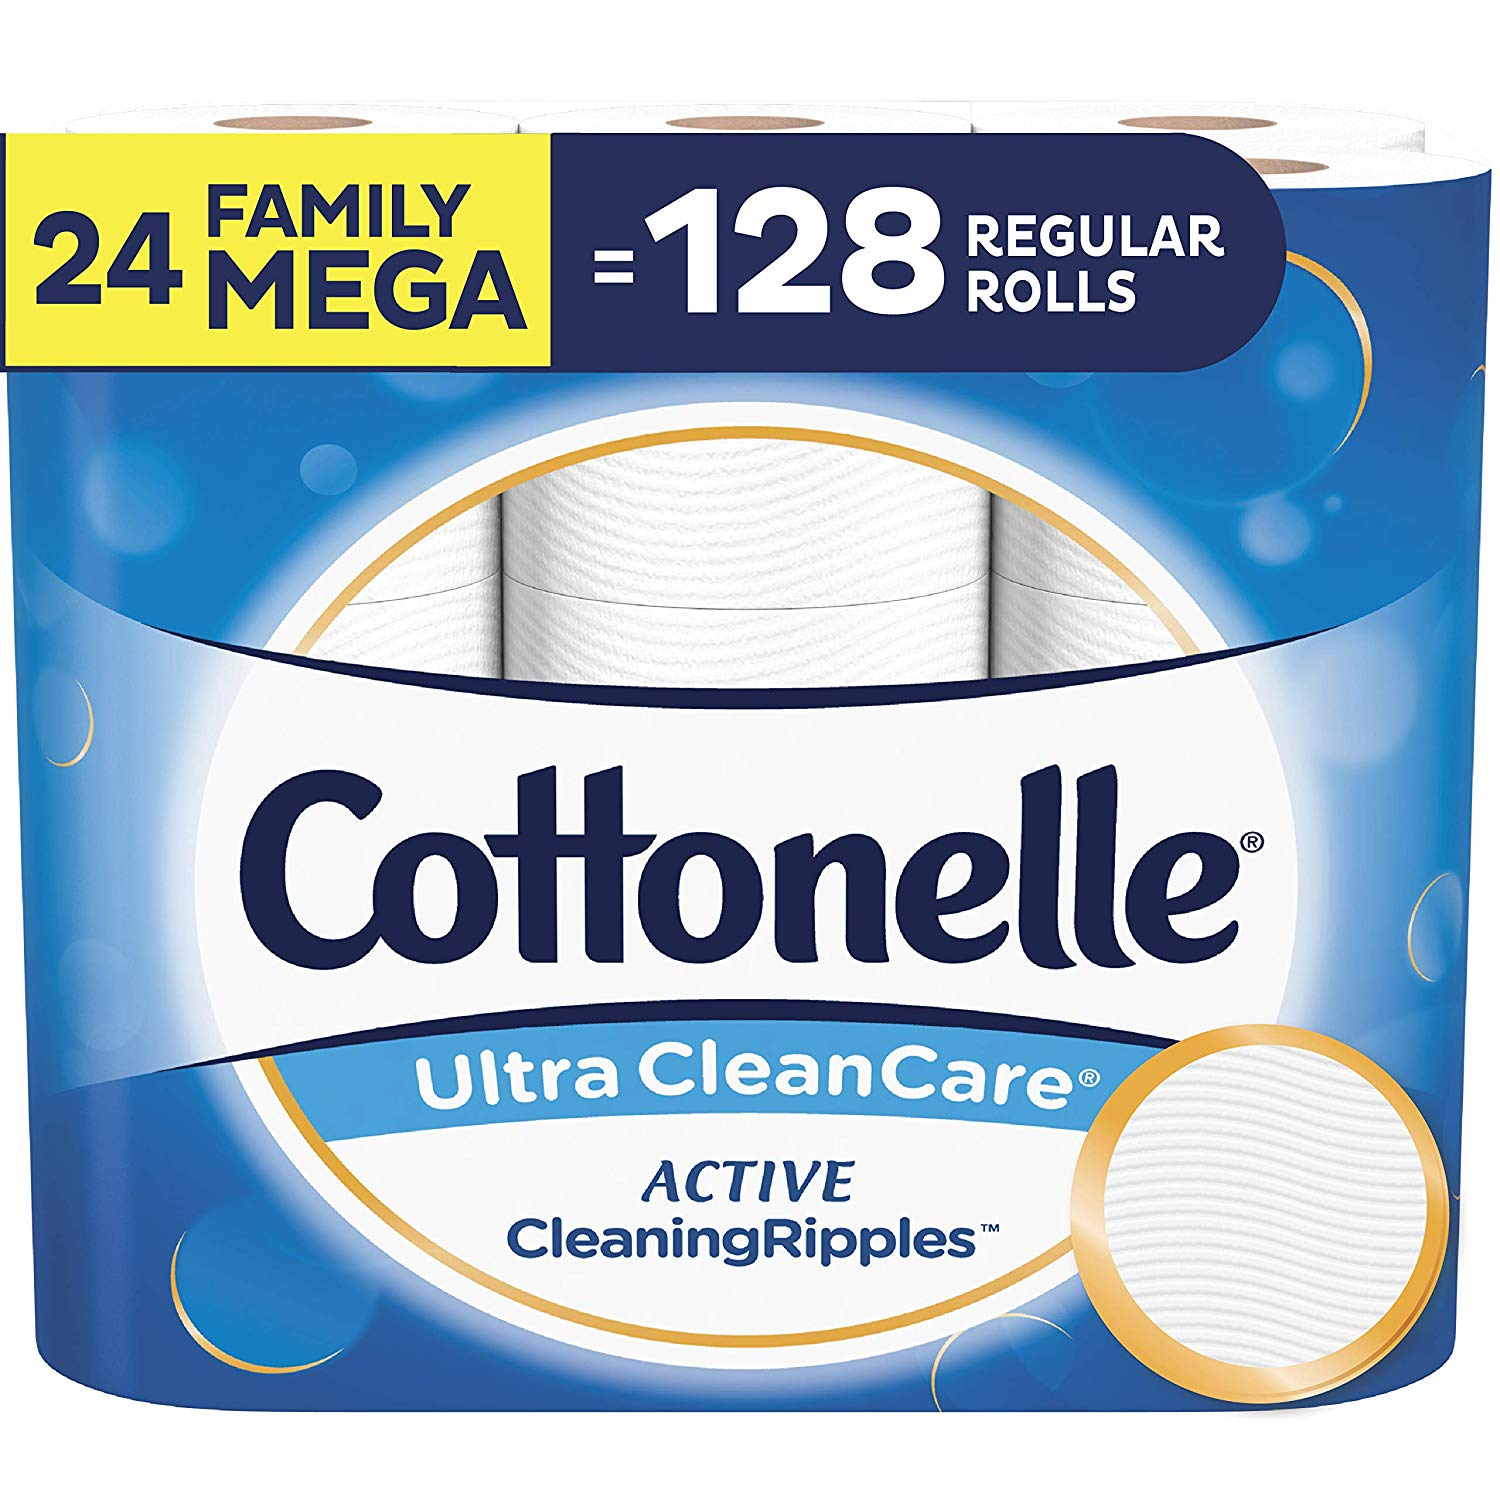 Cottonelle Ultra CleanCare Toilet Paper, with Active CleaningRipples, 24 Family Mega Rolls - In-Stock $25.18